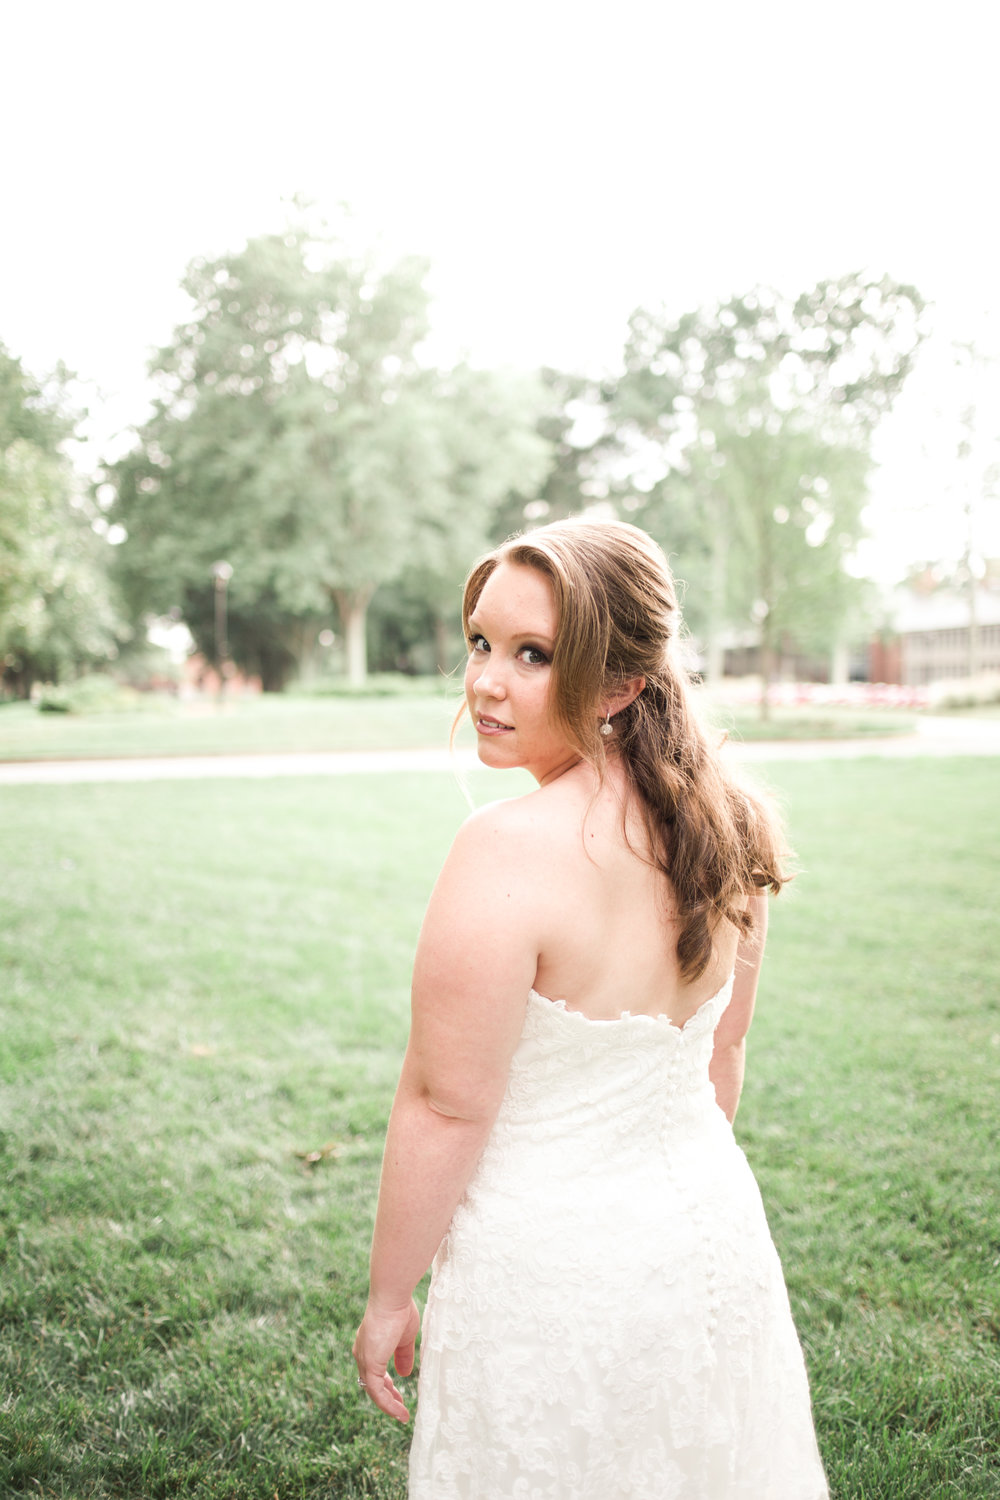 gabbie_bridal_poured_out_photography-25.jpg